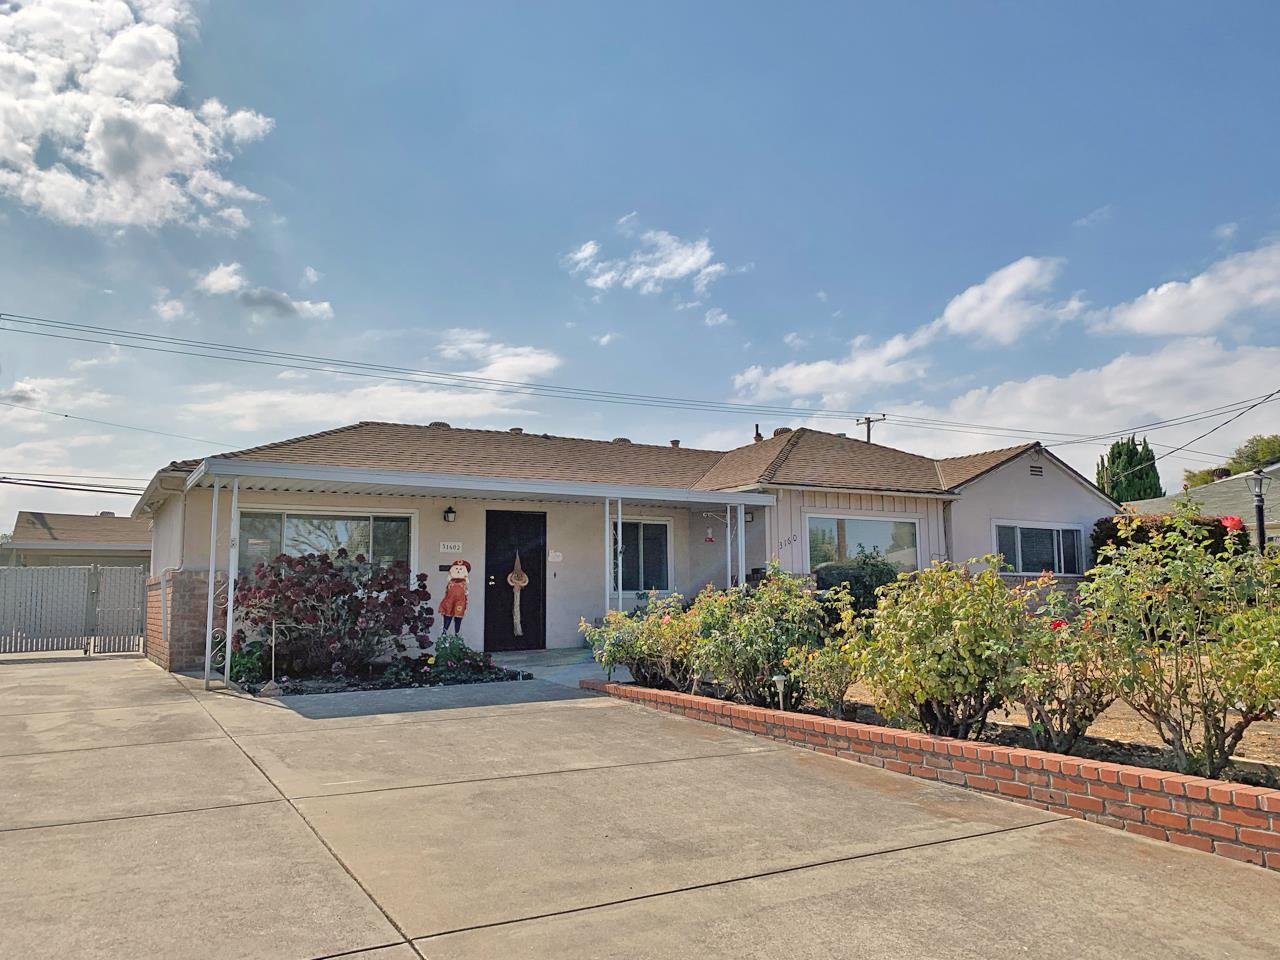 Detail Gallery Image 1 of 1 For 3160 Humbolt Ave, Santa Clara, CA, 95051 - 3 Beds | 2 Baths